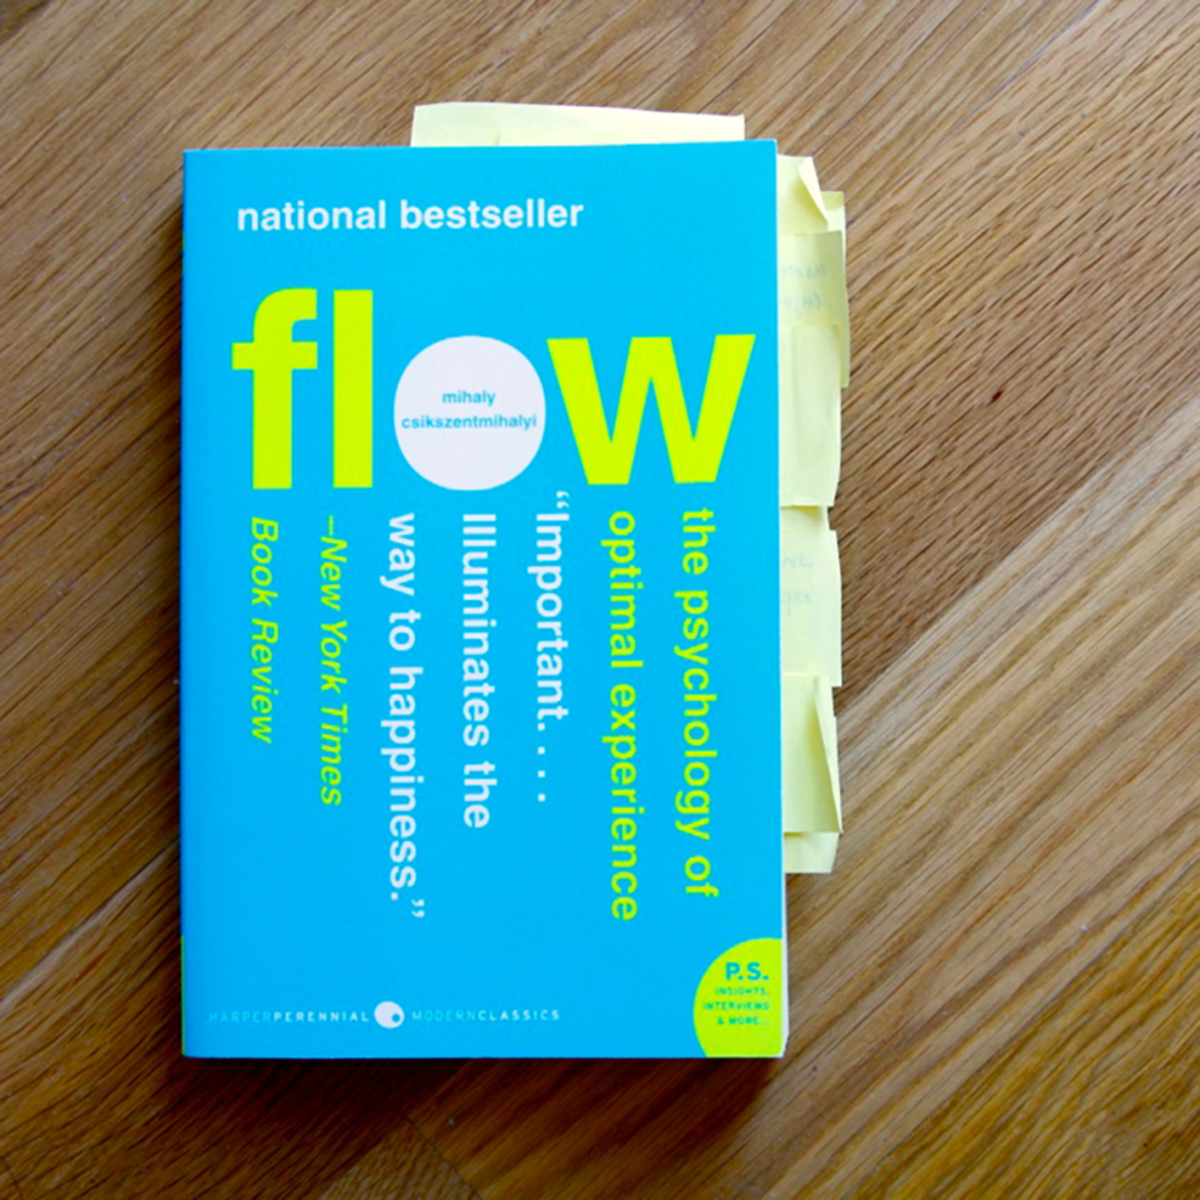 Flow and Seductive Interactions